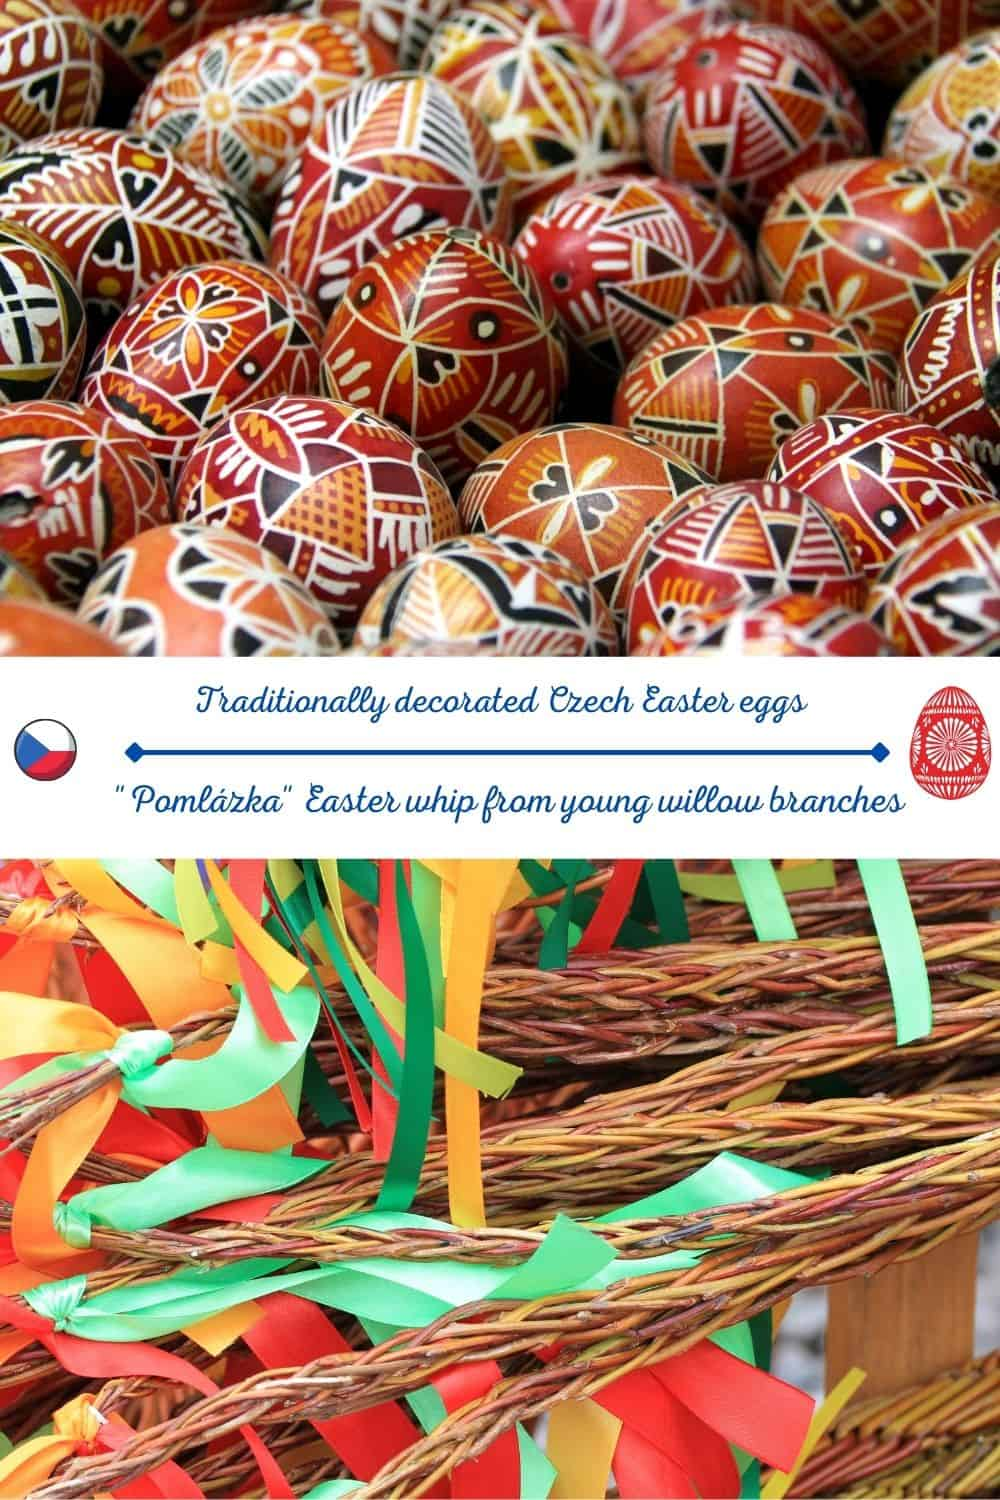 czech easter traditional eggs and pomlazka